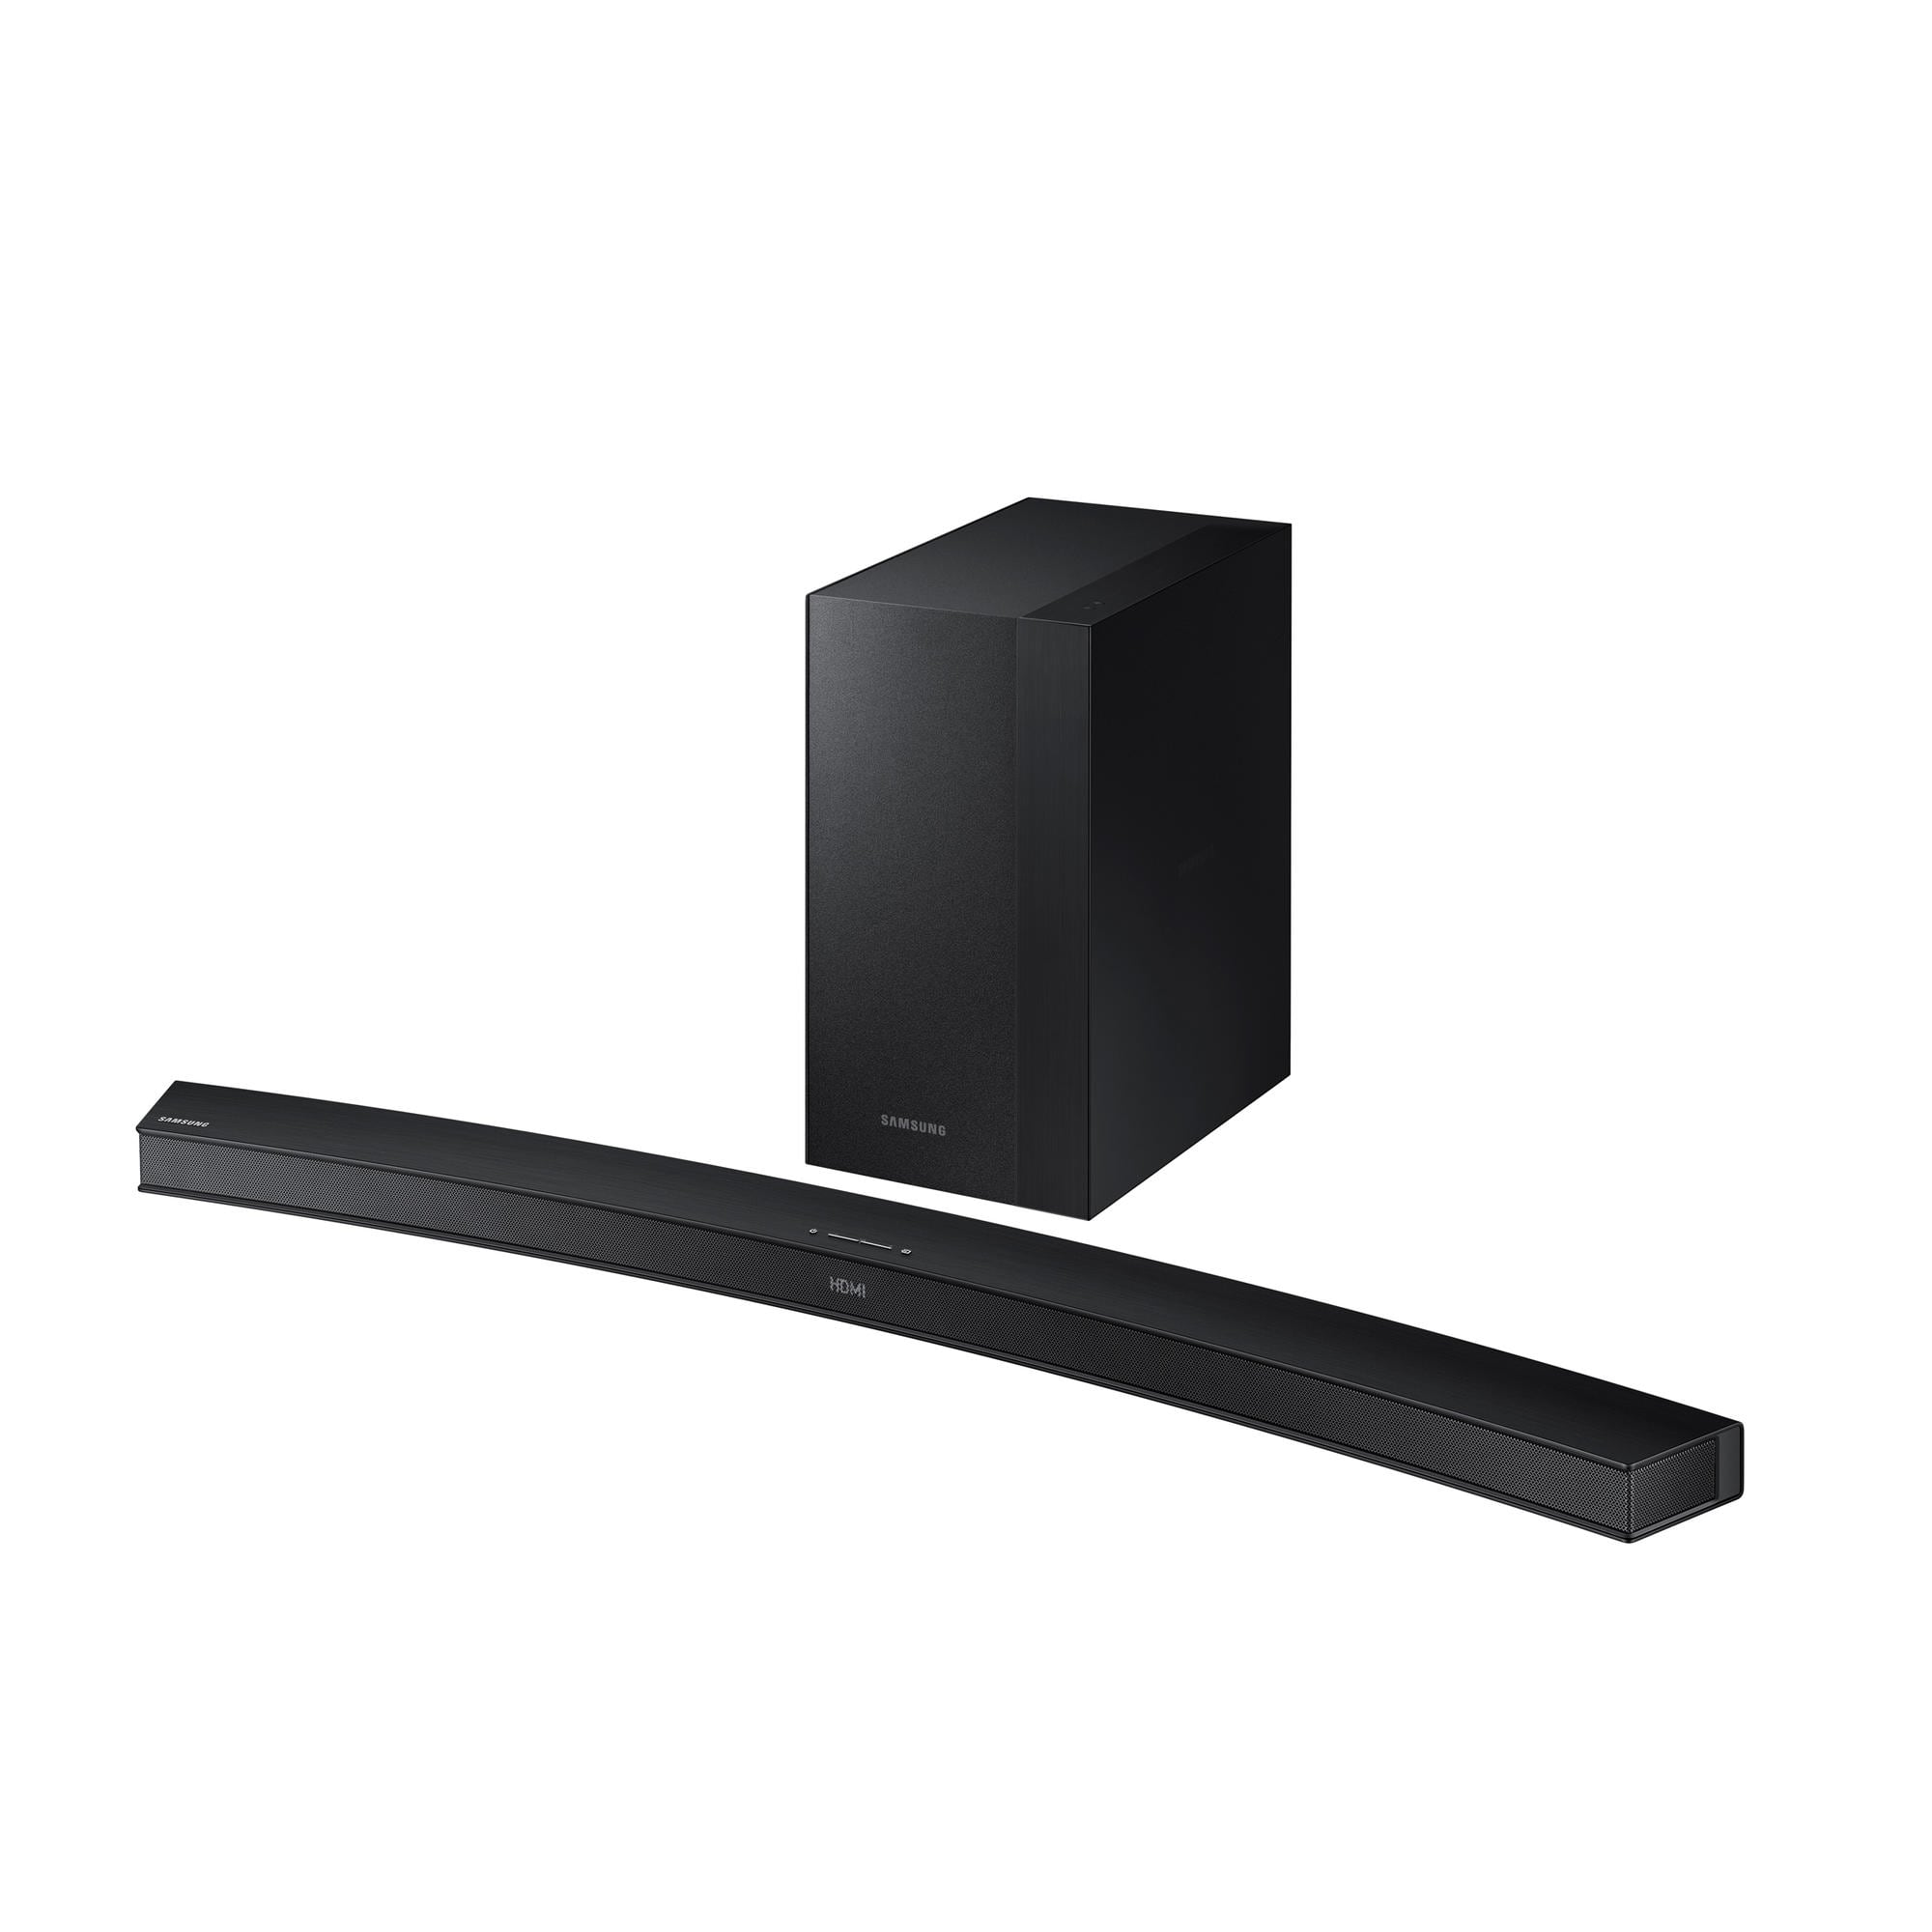 Samsung HW-M4500/ZA 260W 2.1-Channel Curved Soundbar w/ Wireless Subwoofer & amp with $30 back in SYWR Points for $167.99 AC @ Kmart